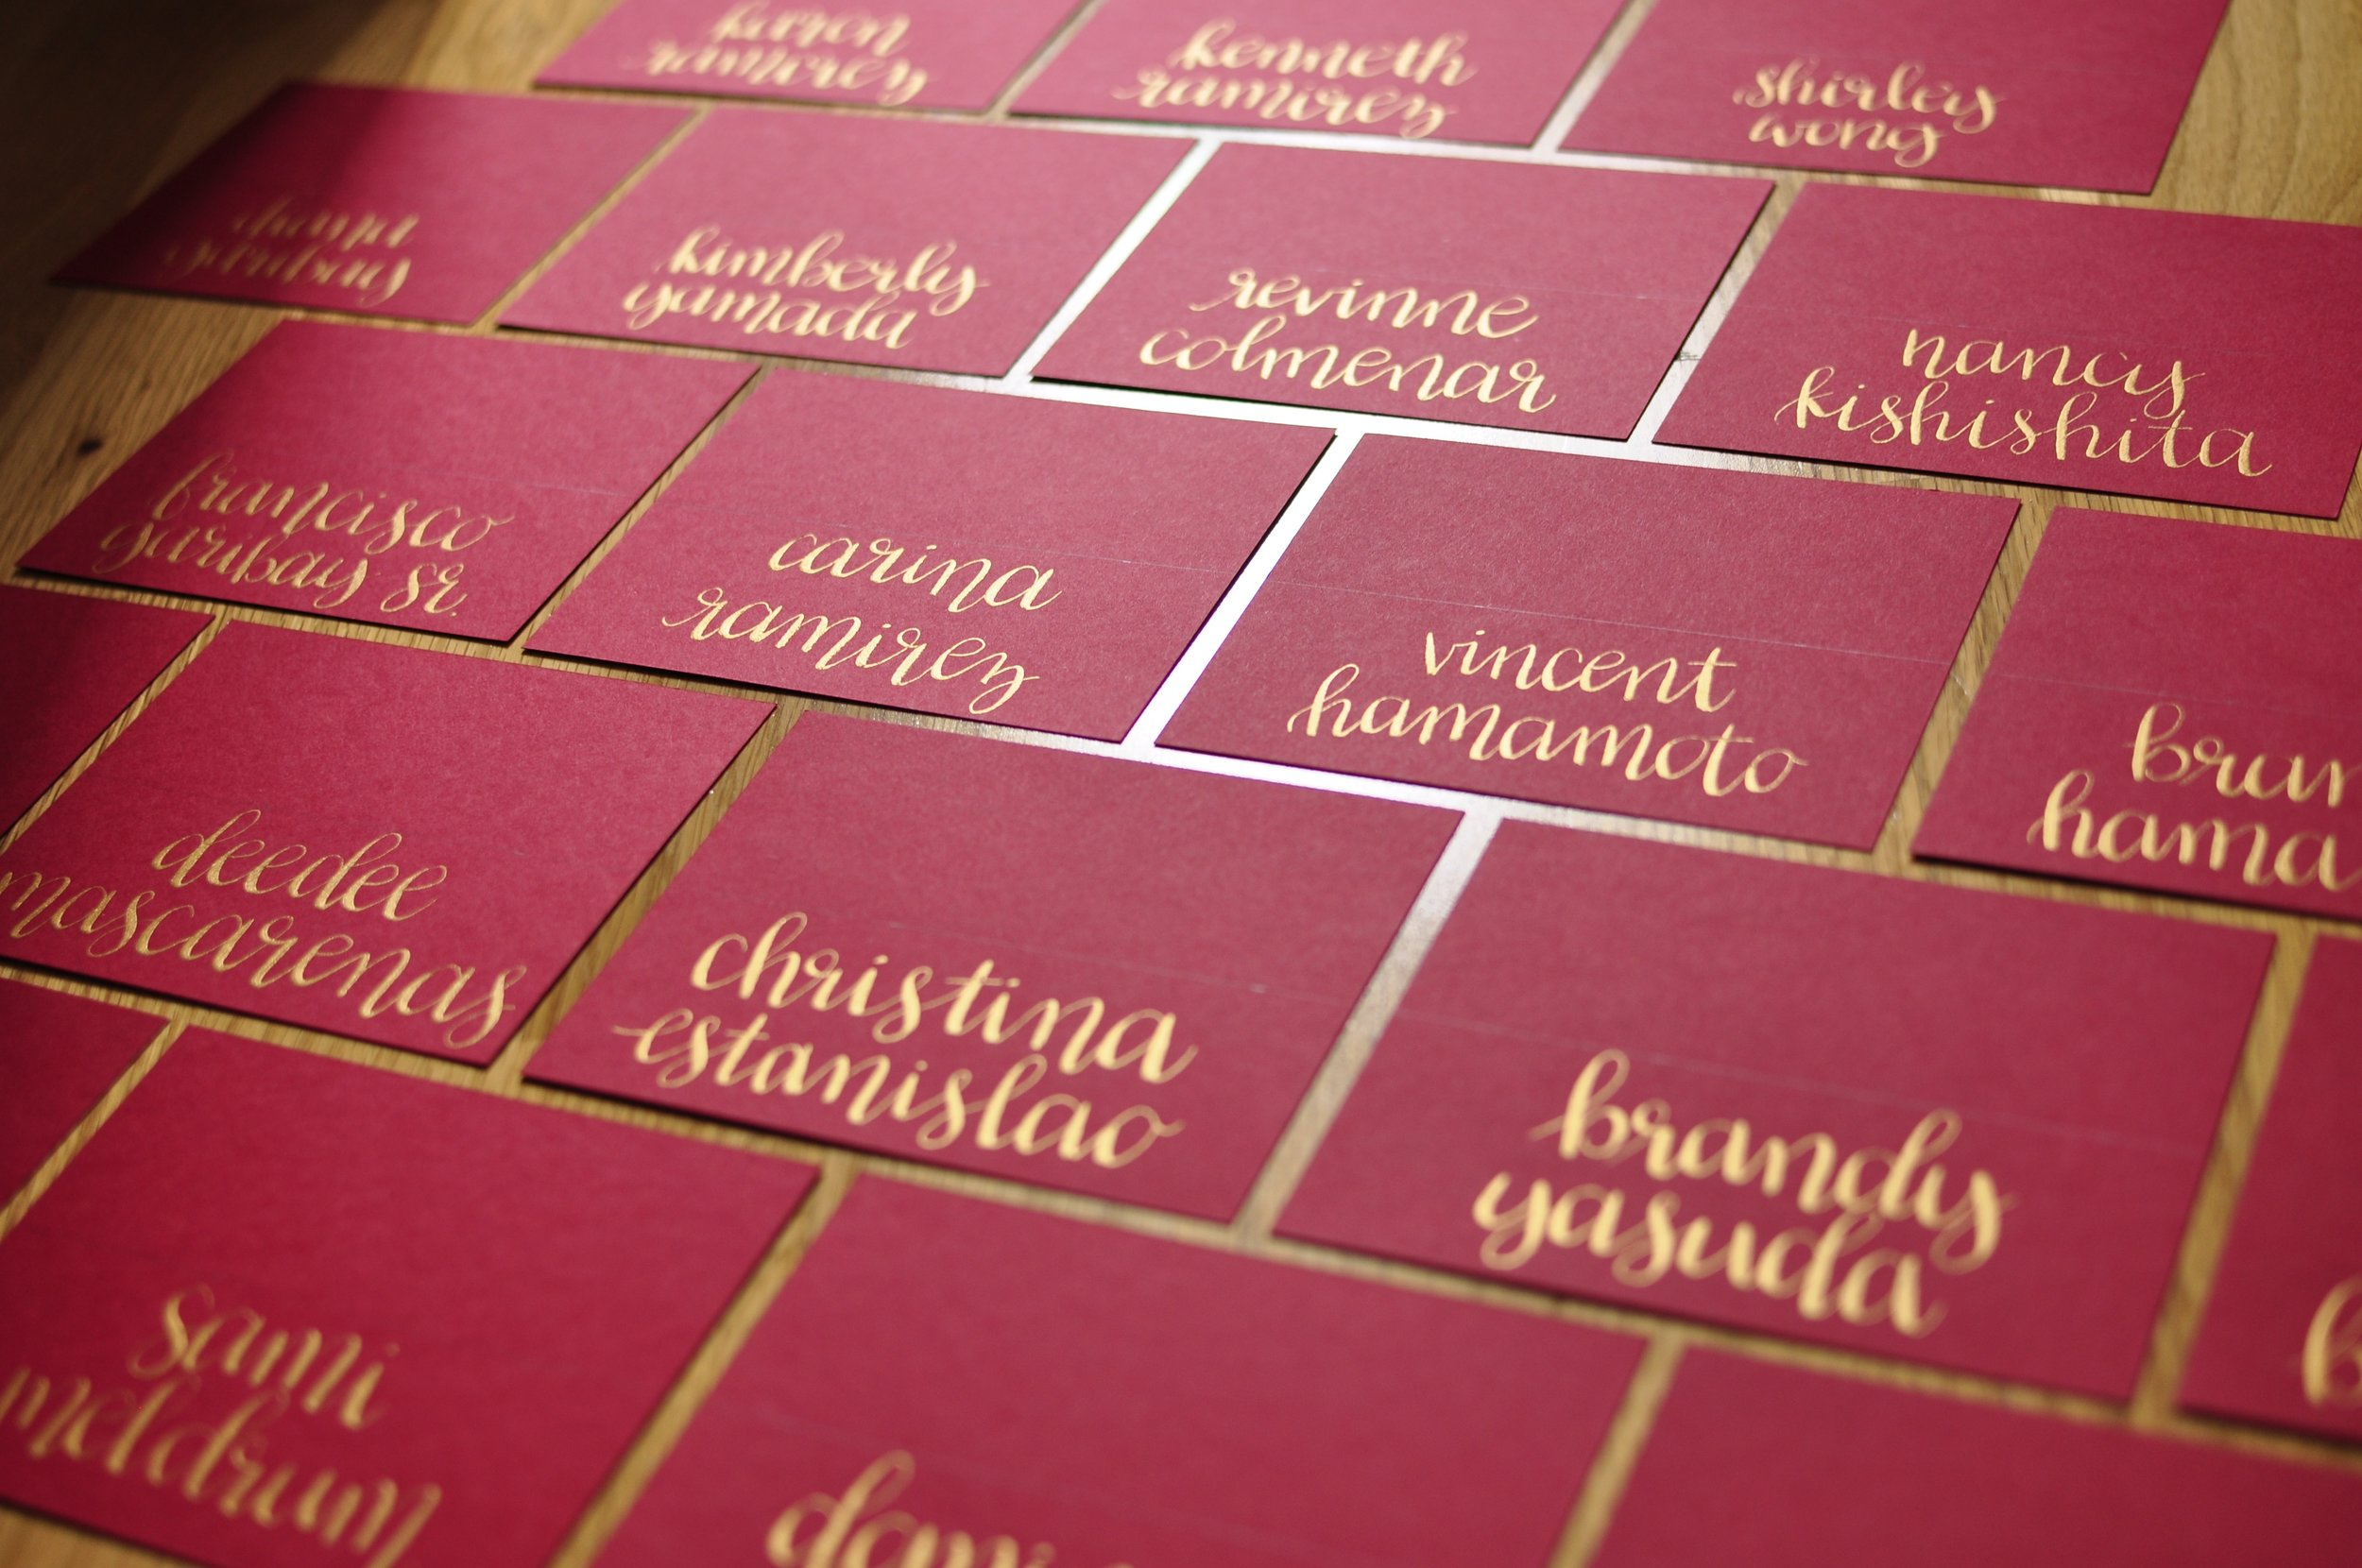 wedding table name cards materials: nikko g nib + gold ink on red cardstock